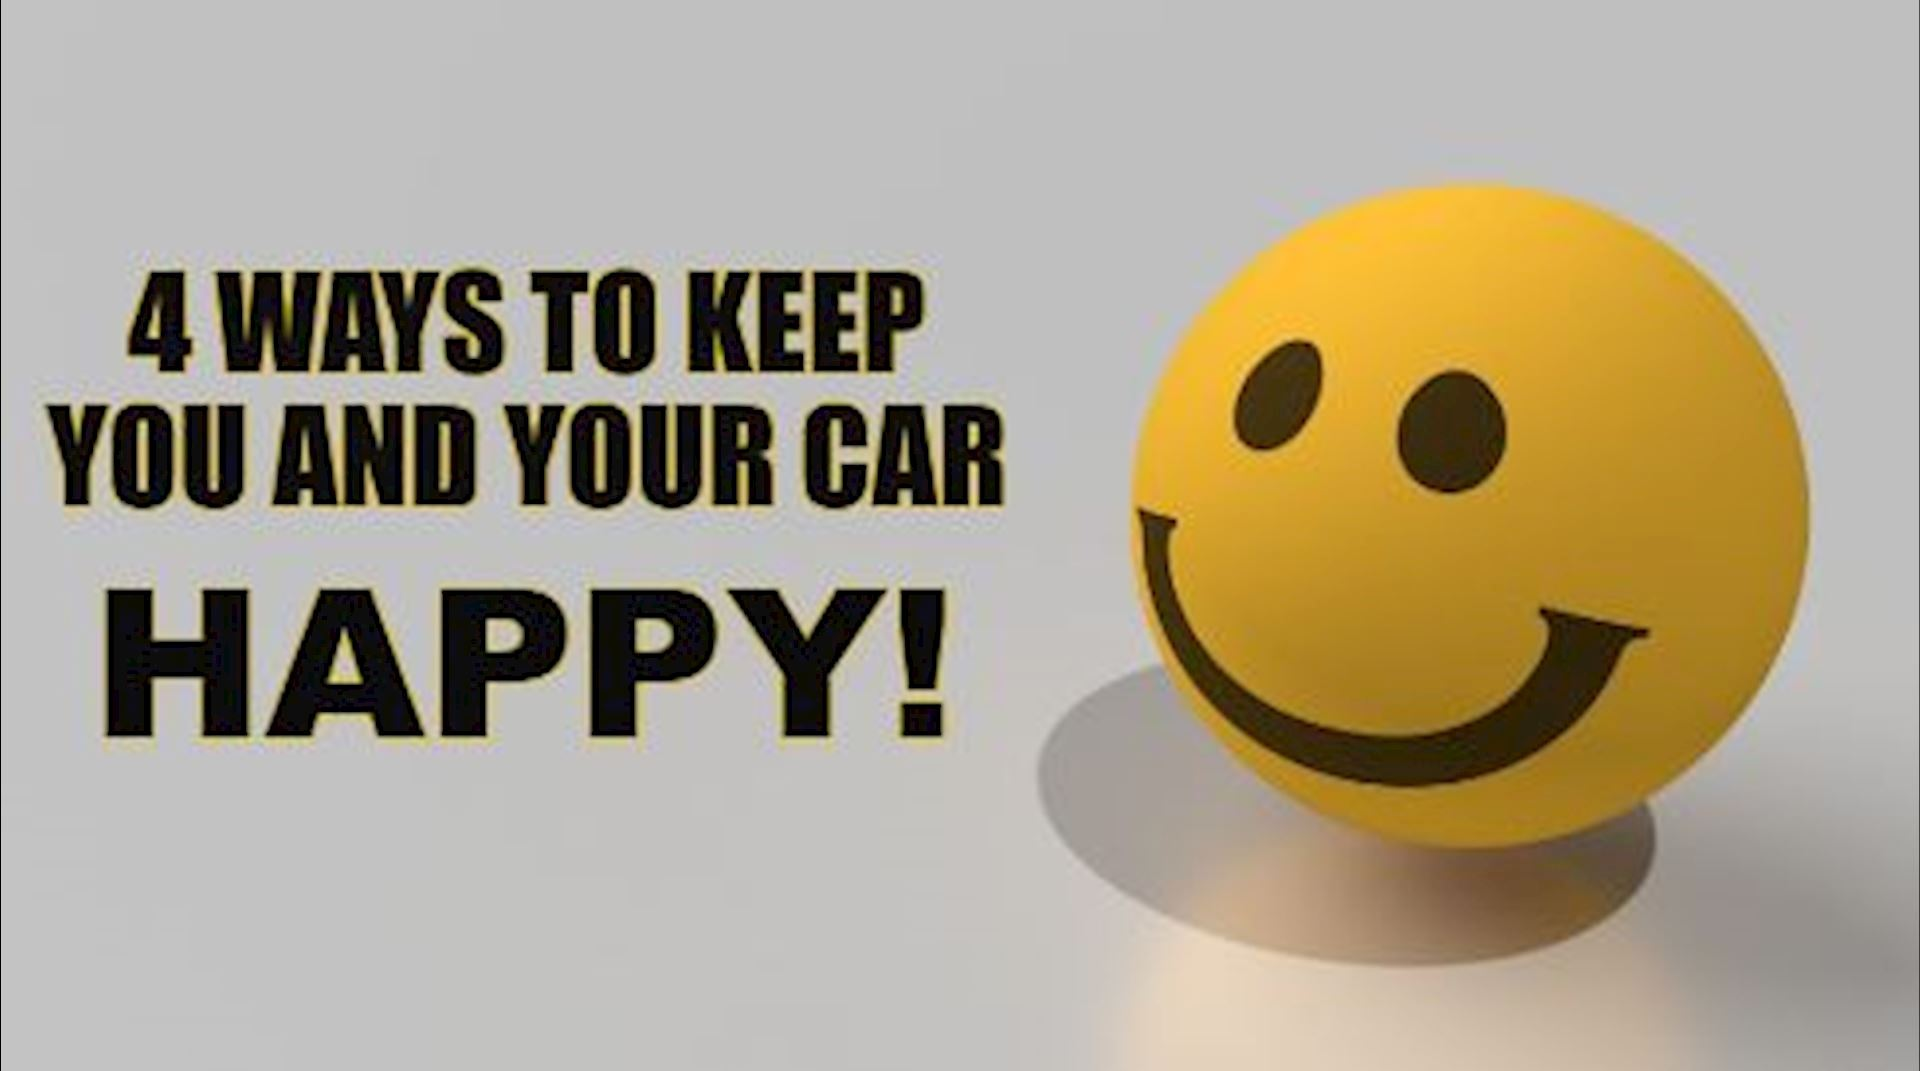 4 Ways to Keep You and Your Car Happy!